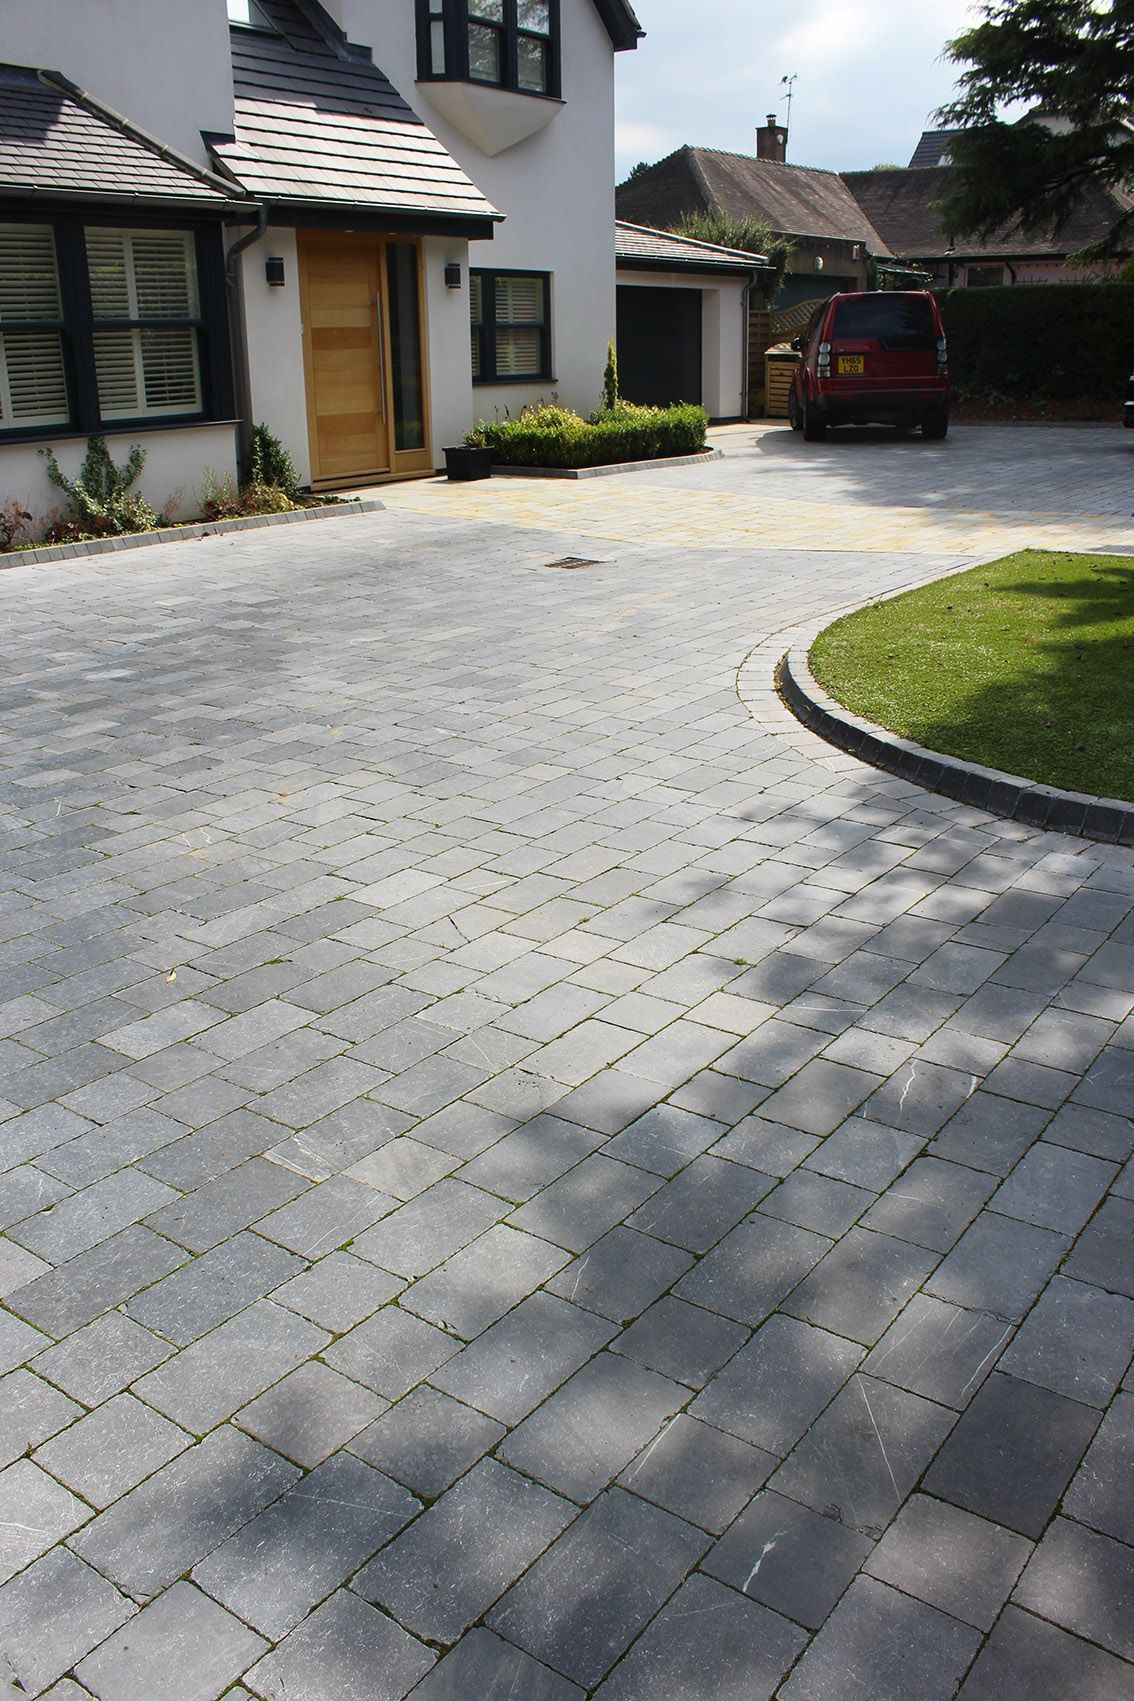 50 Best Driveway Ideas To Improve The Appeal Of Your House Block Paving Driveway Modern Driveway Garden Ideas Driveway